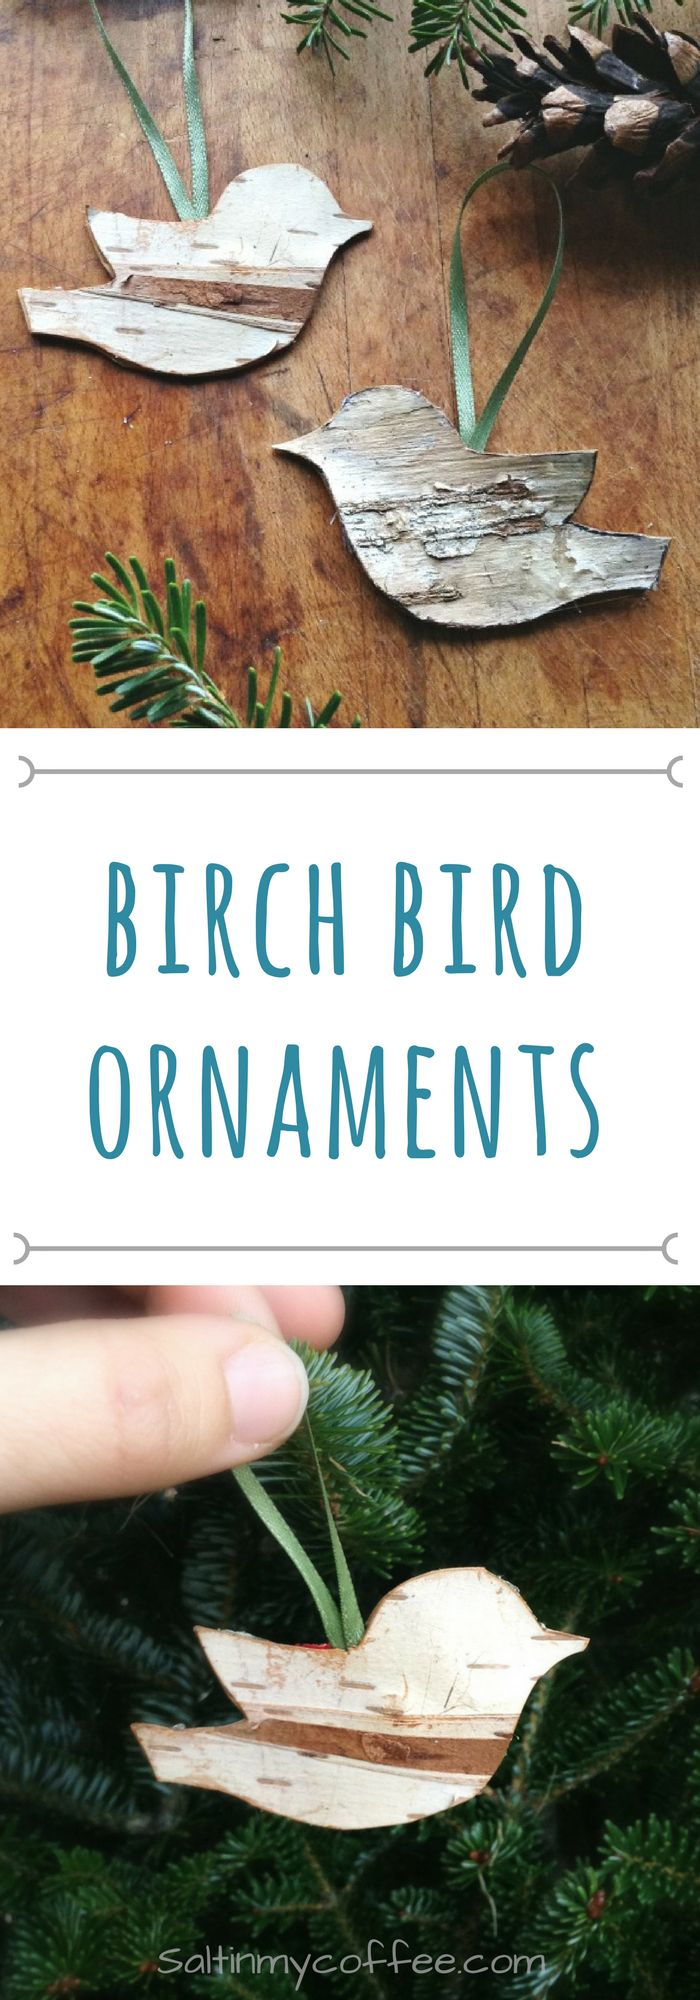 These adorable handmade birch bird ornaments are so easy to make! Craft a whole little flock for your Christmas tree! They also make great gift tags!!